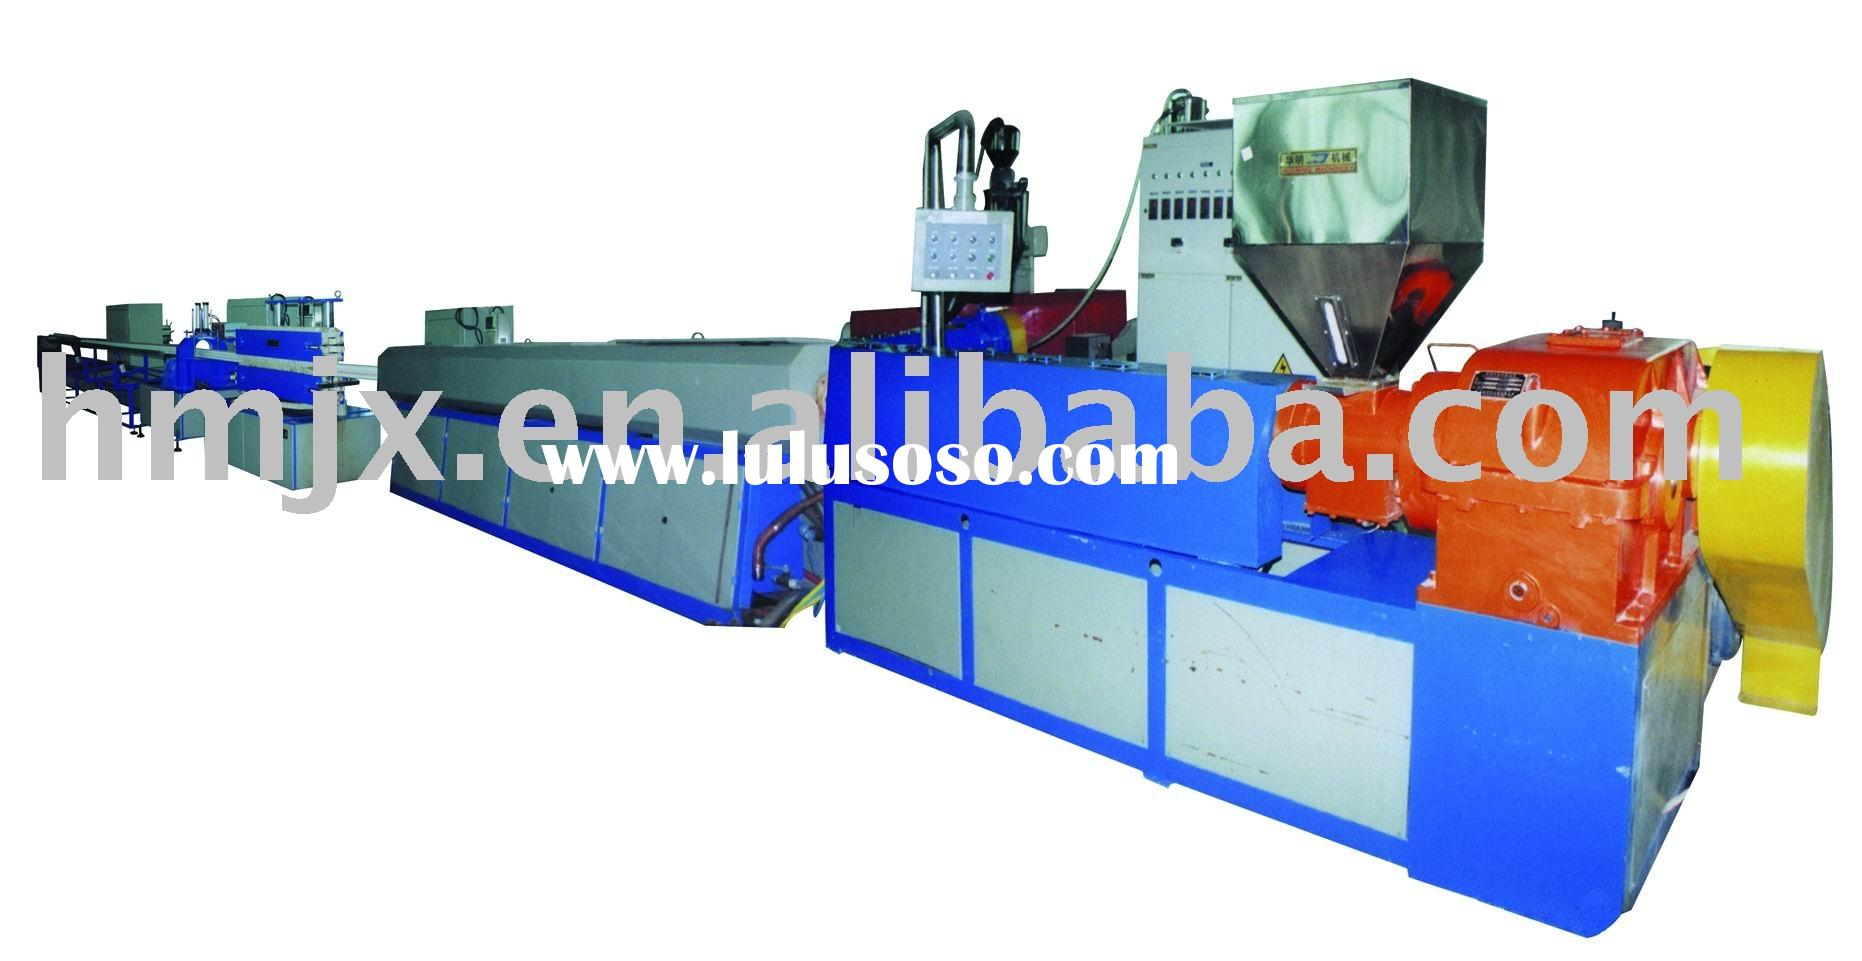 Multiple-Hole Plastic Pipe Production Line For Telecommunication (Pipe Making Machine)